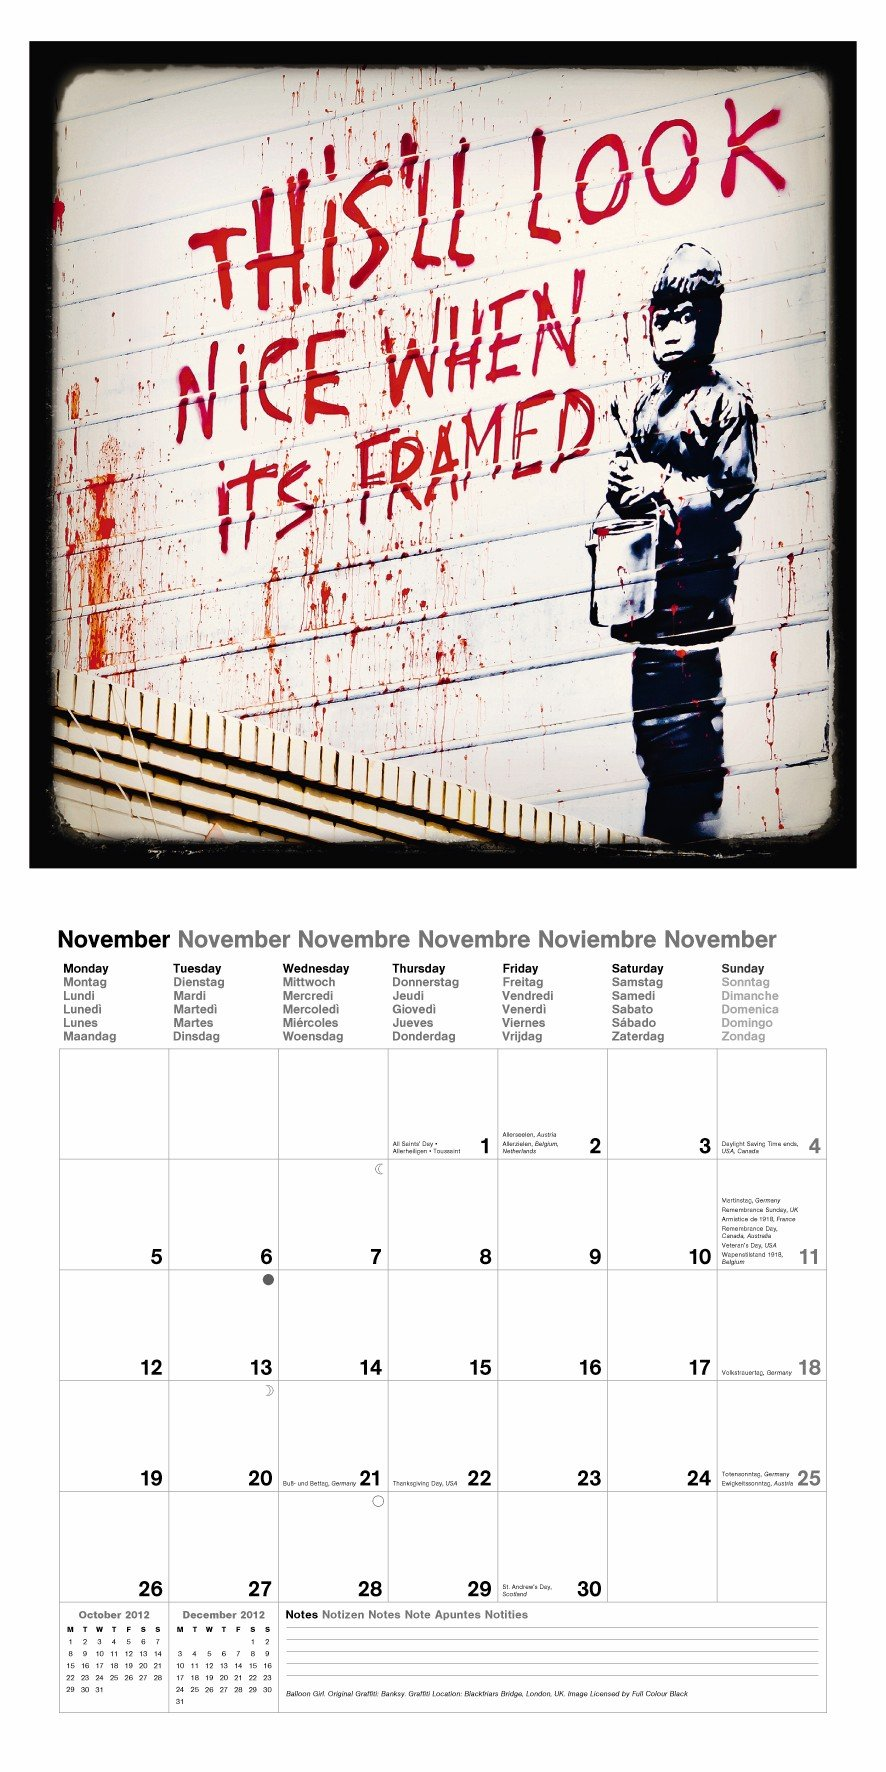 2012 Banksy Wall Calendar (English, German, French, Italian, Spanish and Dutch Edition) by teNeues